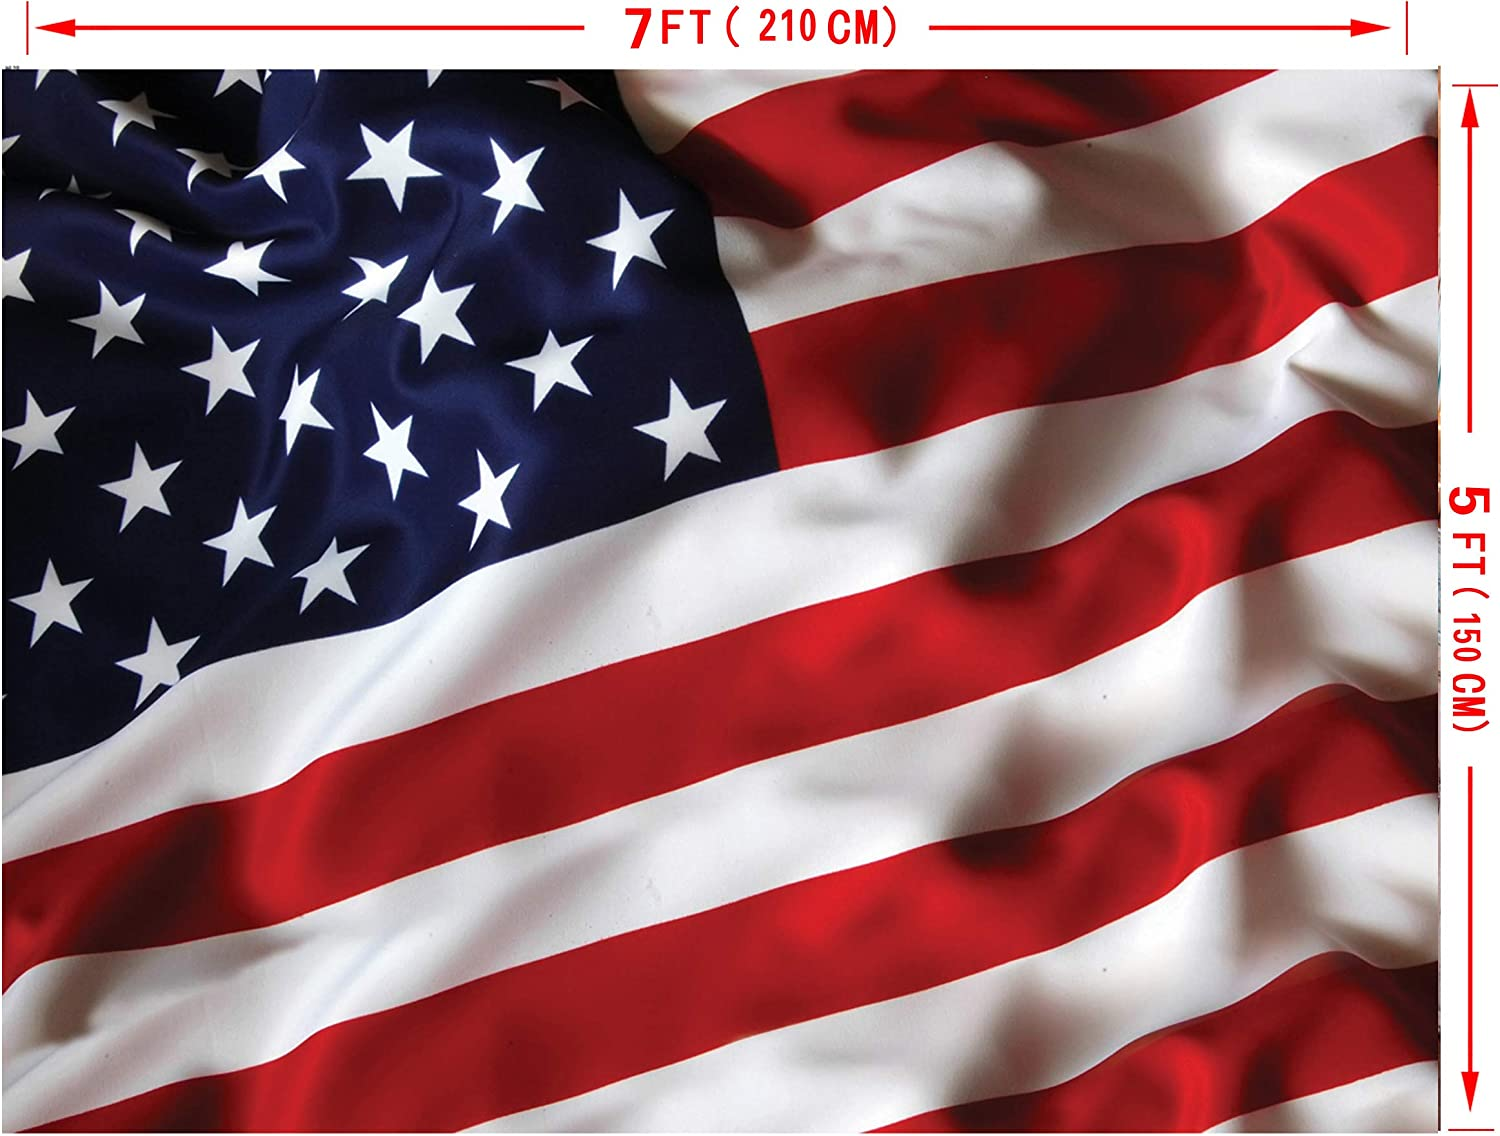 7x10 FT USA Vinyl Photography Backdrop,Fourth of July Independence Day Retro Worn Wooden Looking Democracy Symbol Background for Baby Birthday Party Wedding Graduation Home Decoration